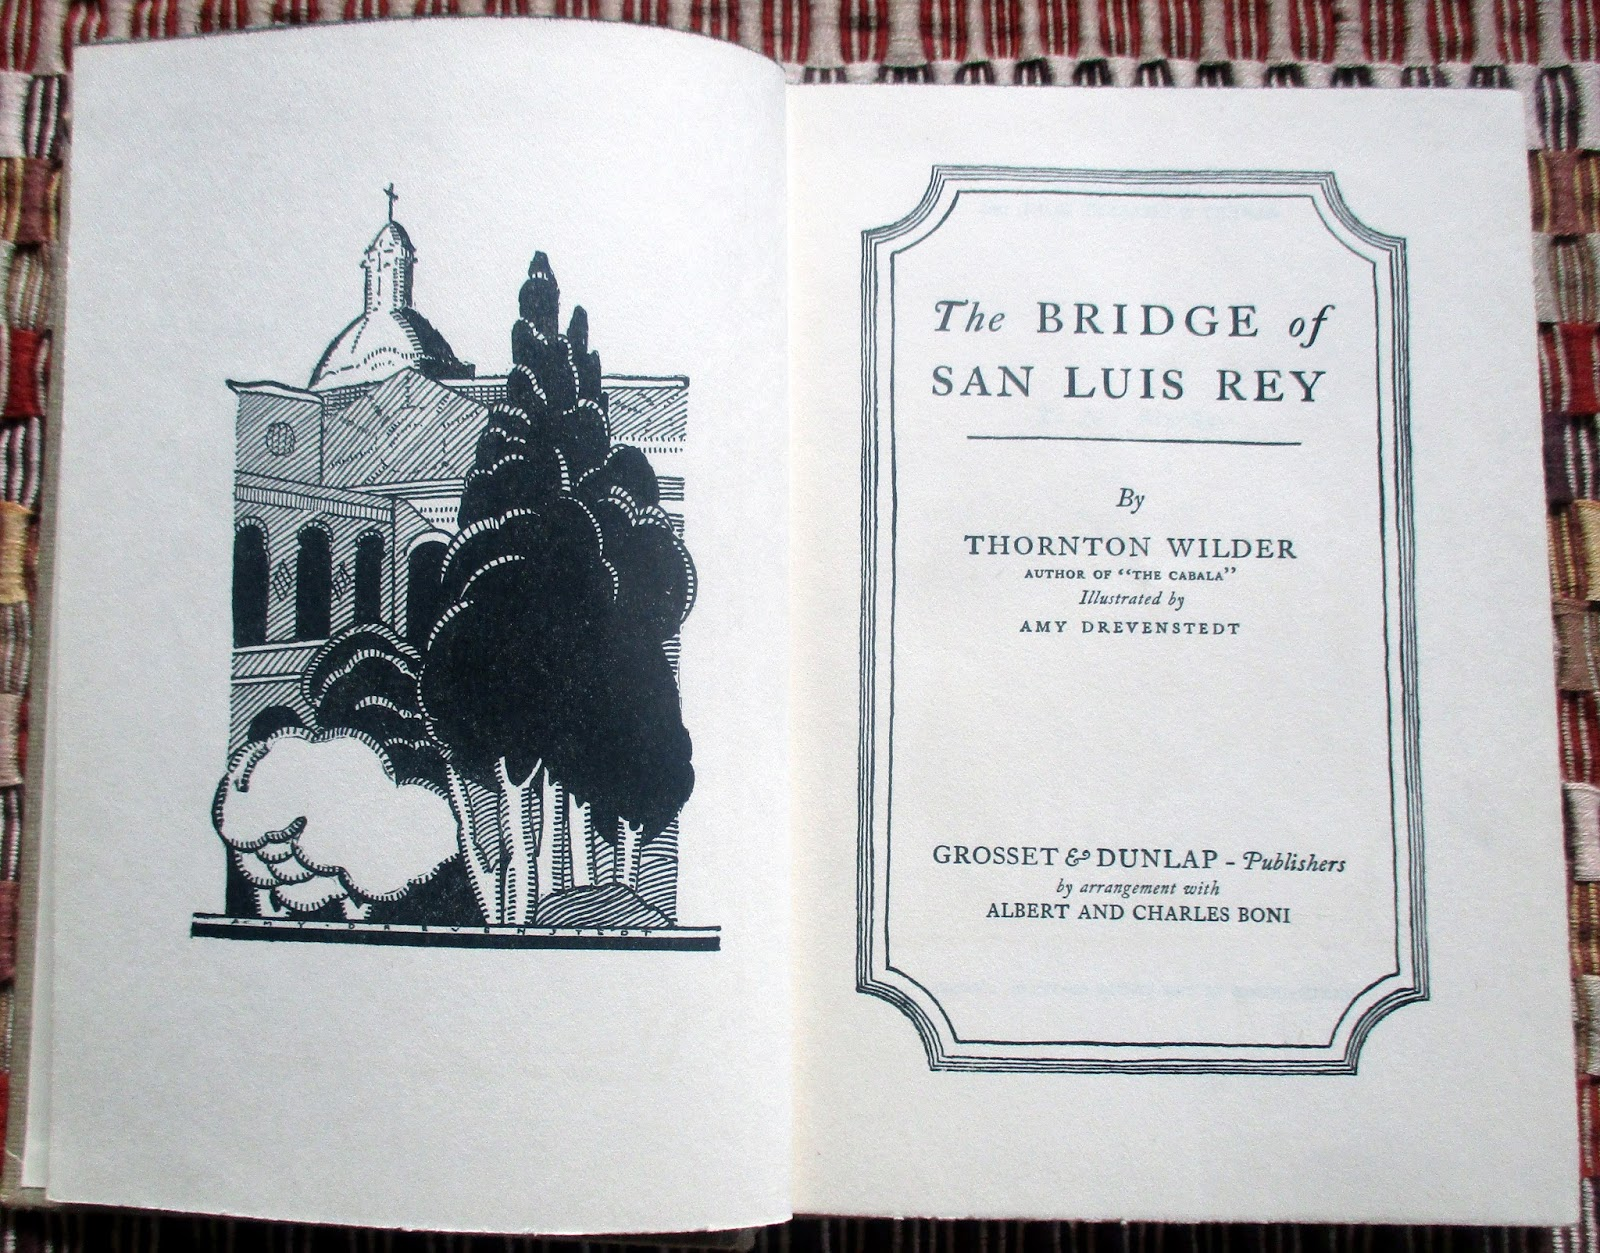 a character analysis of pepita in the novel the bridge of san luis rey by thornton wilder The the bridge of san luis rey community note includes chapter-by-chapter summary and analysis, character list, theme list, historical context, author biography and.